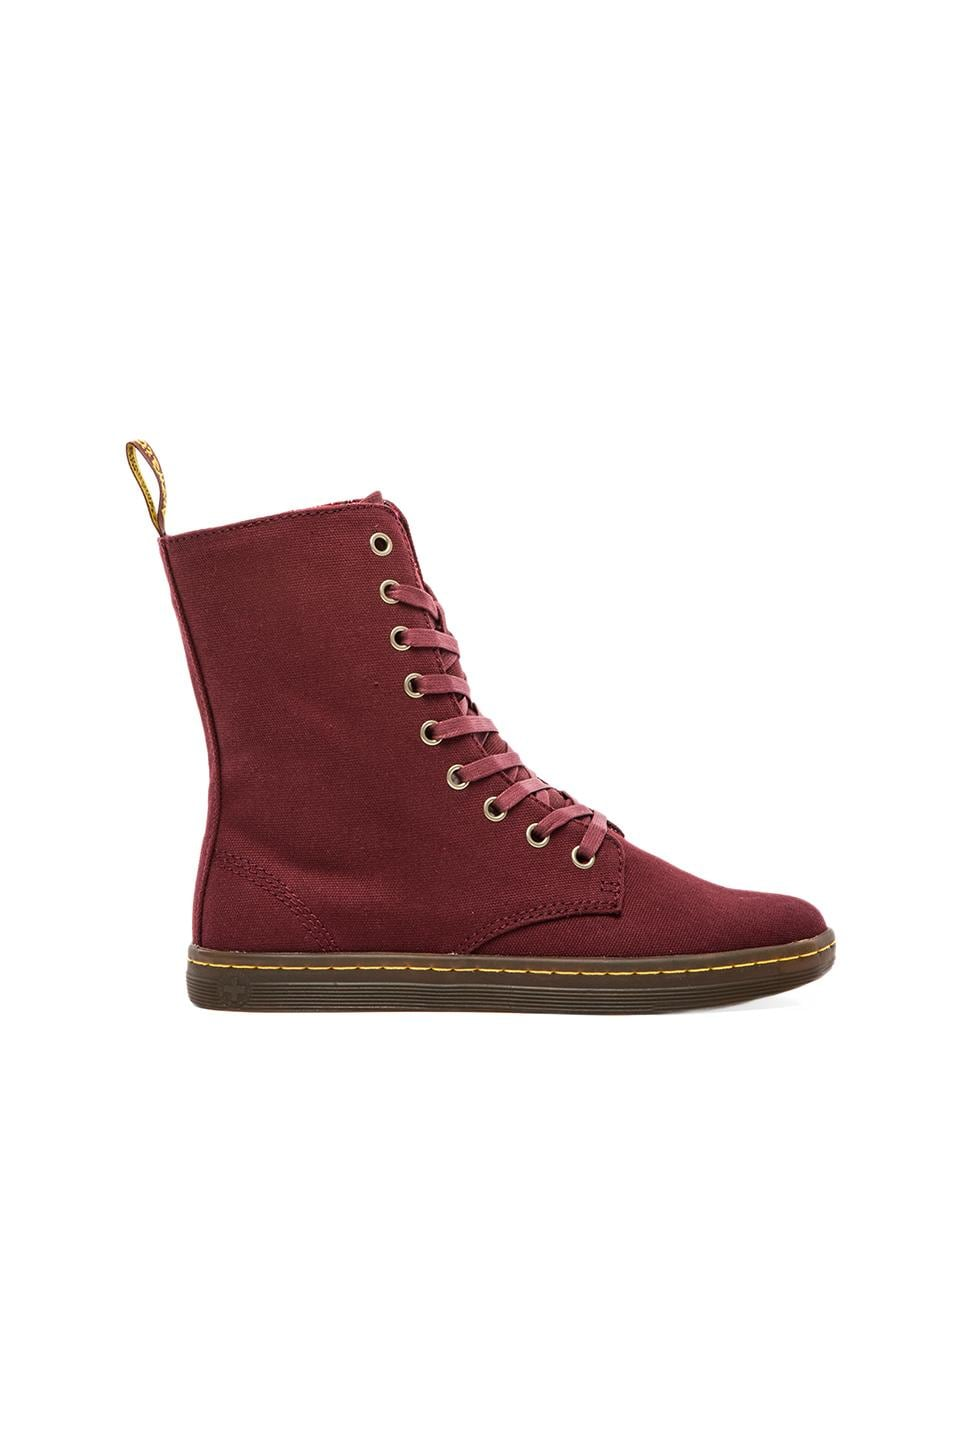 Dr. Martens Stratford 9-Eye Fold Down Boot in Cherry Red